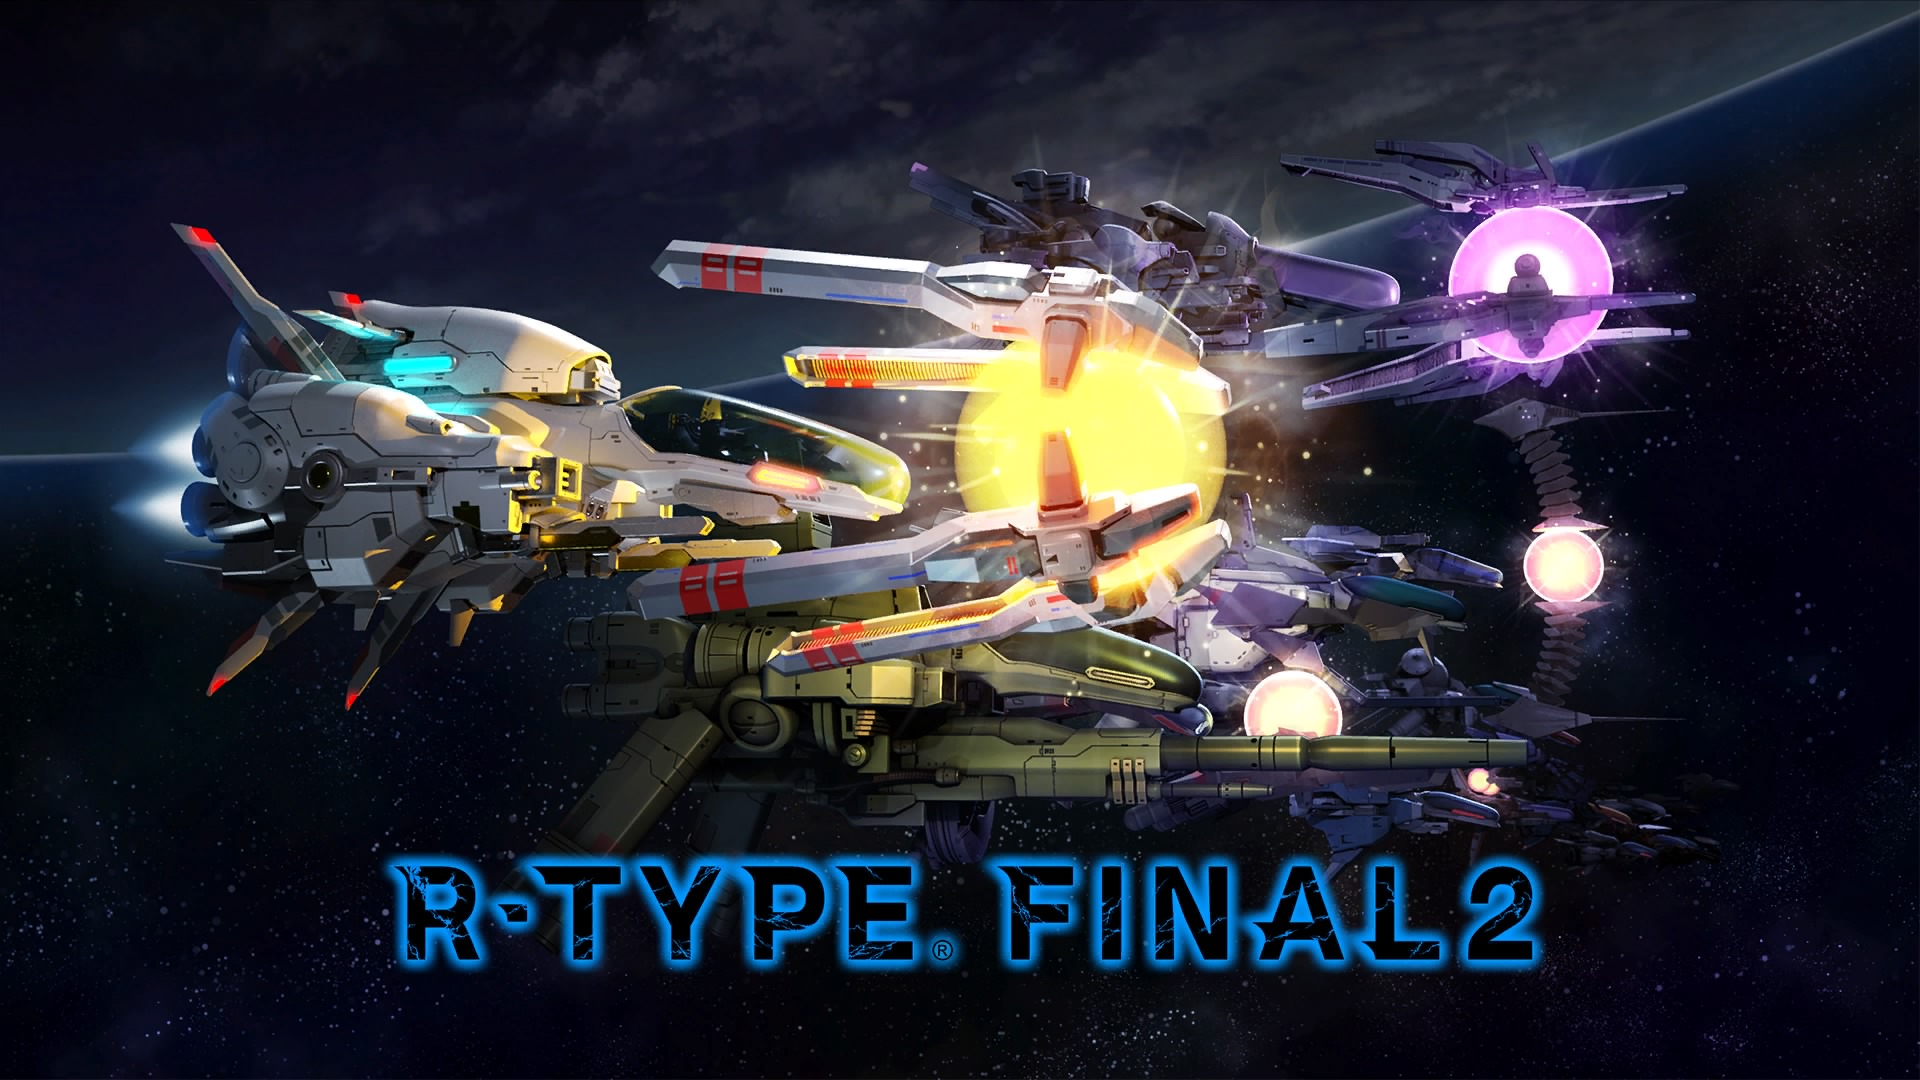 r-type_final_2_splash R-Type Final 2 - Hopefully, This Is Not Your Final Form...